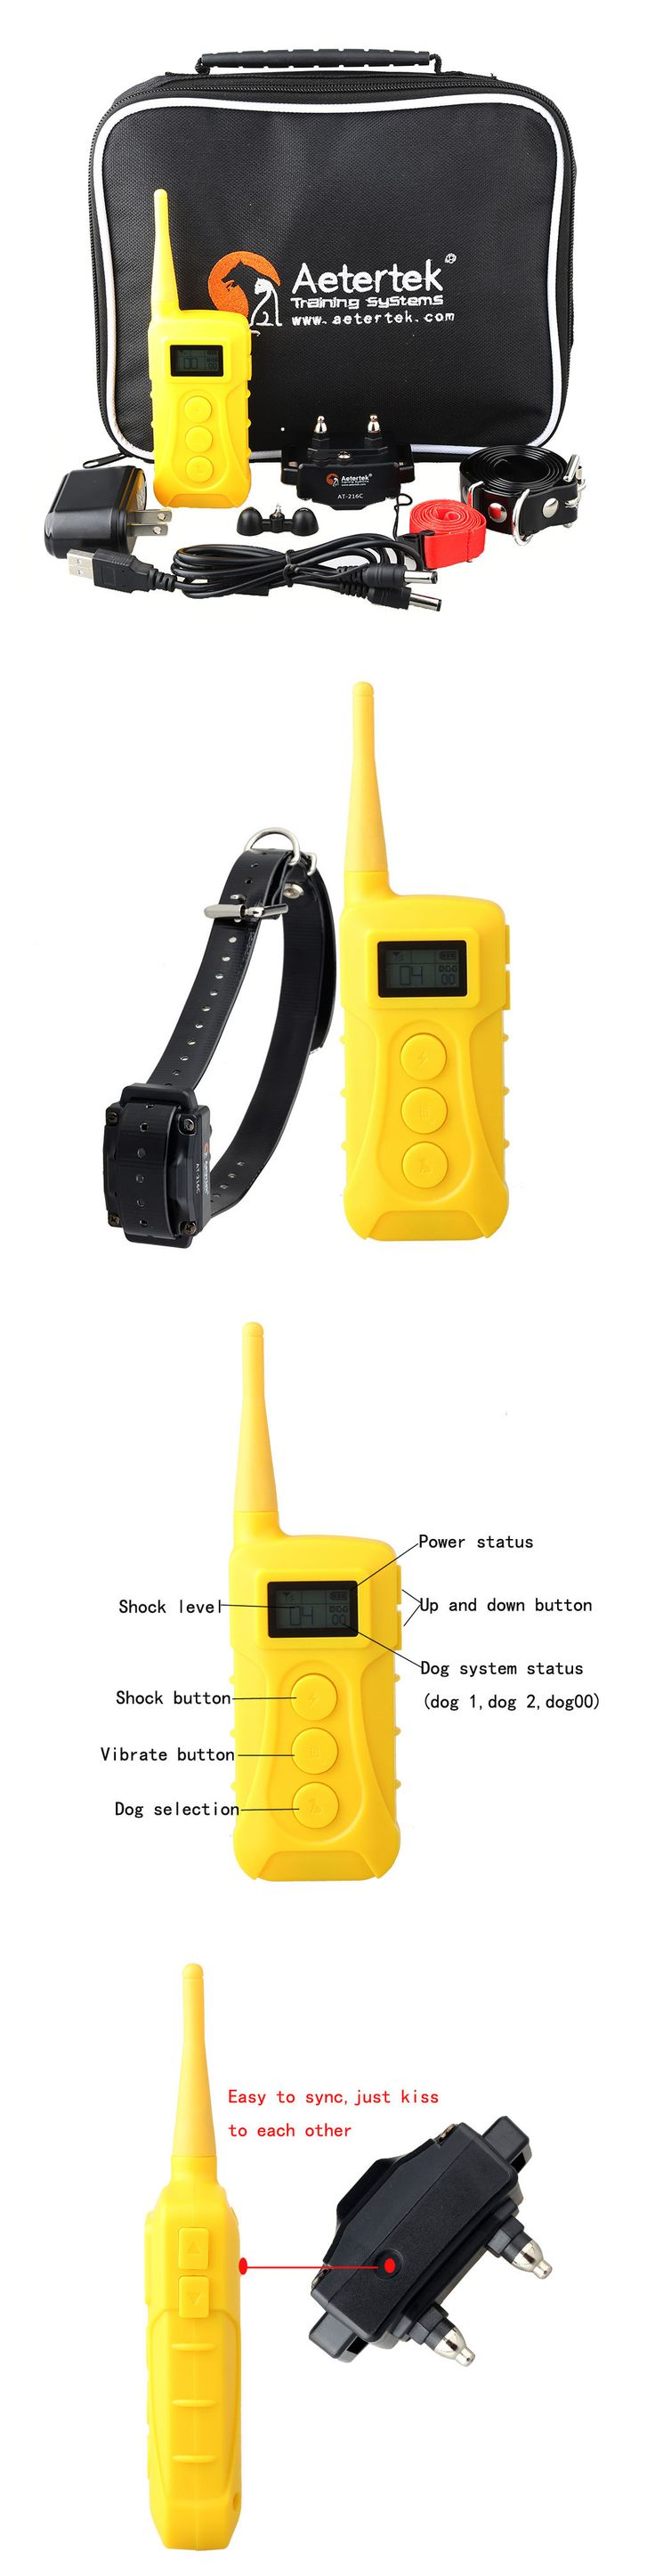 Animals Dog: Dog Training Collar With Remote For Small Medium Large Dogs 10 Level Shock Vibra BUY IT NOW ONLY: $59.99